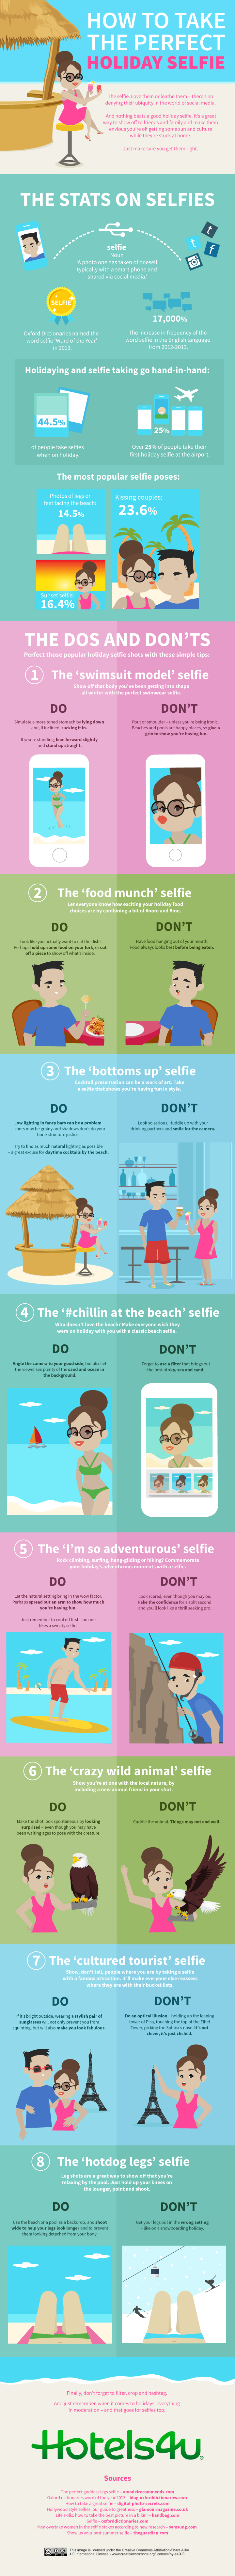 How To Take The Perfect Holiday Selfie